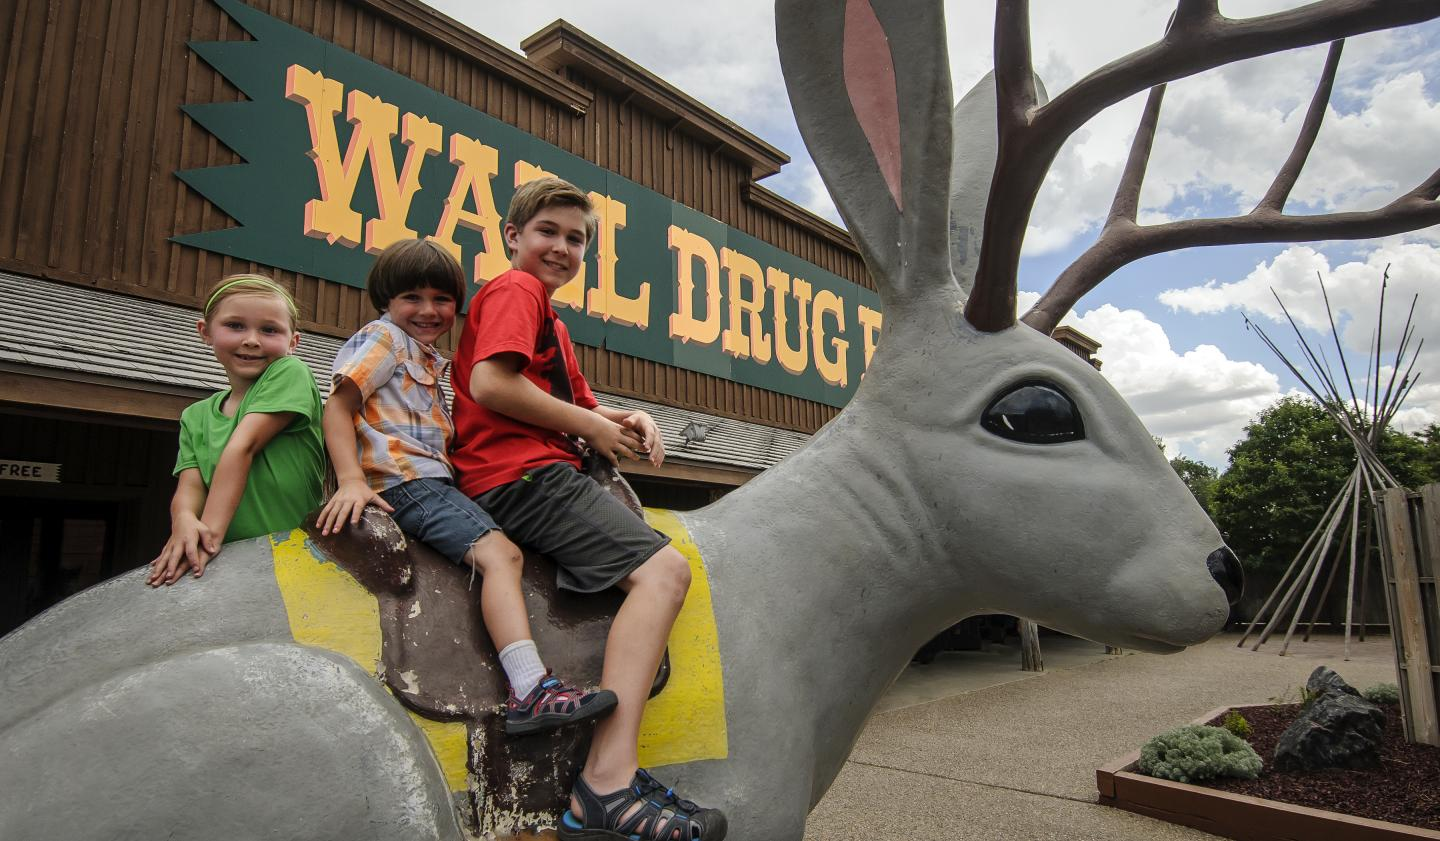 Wall Drug Store Part 86